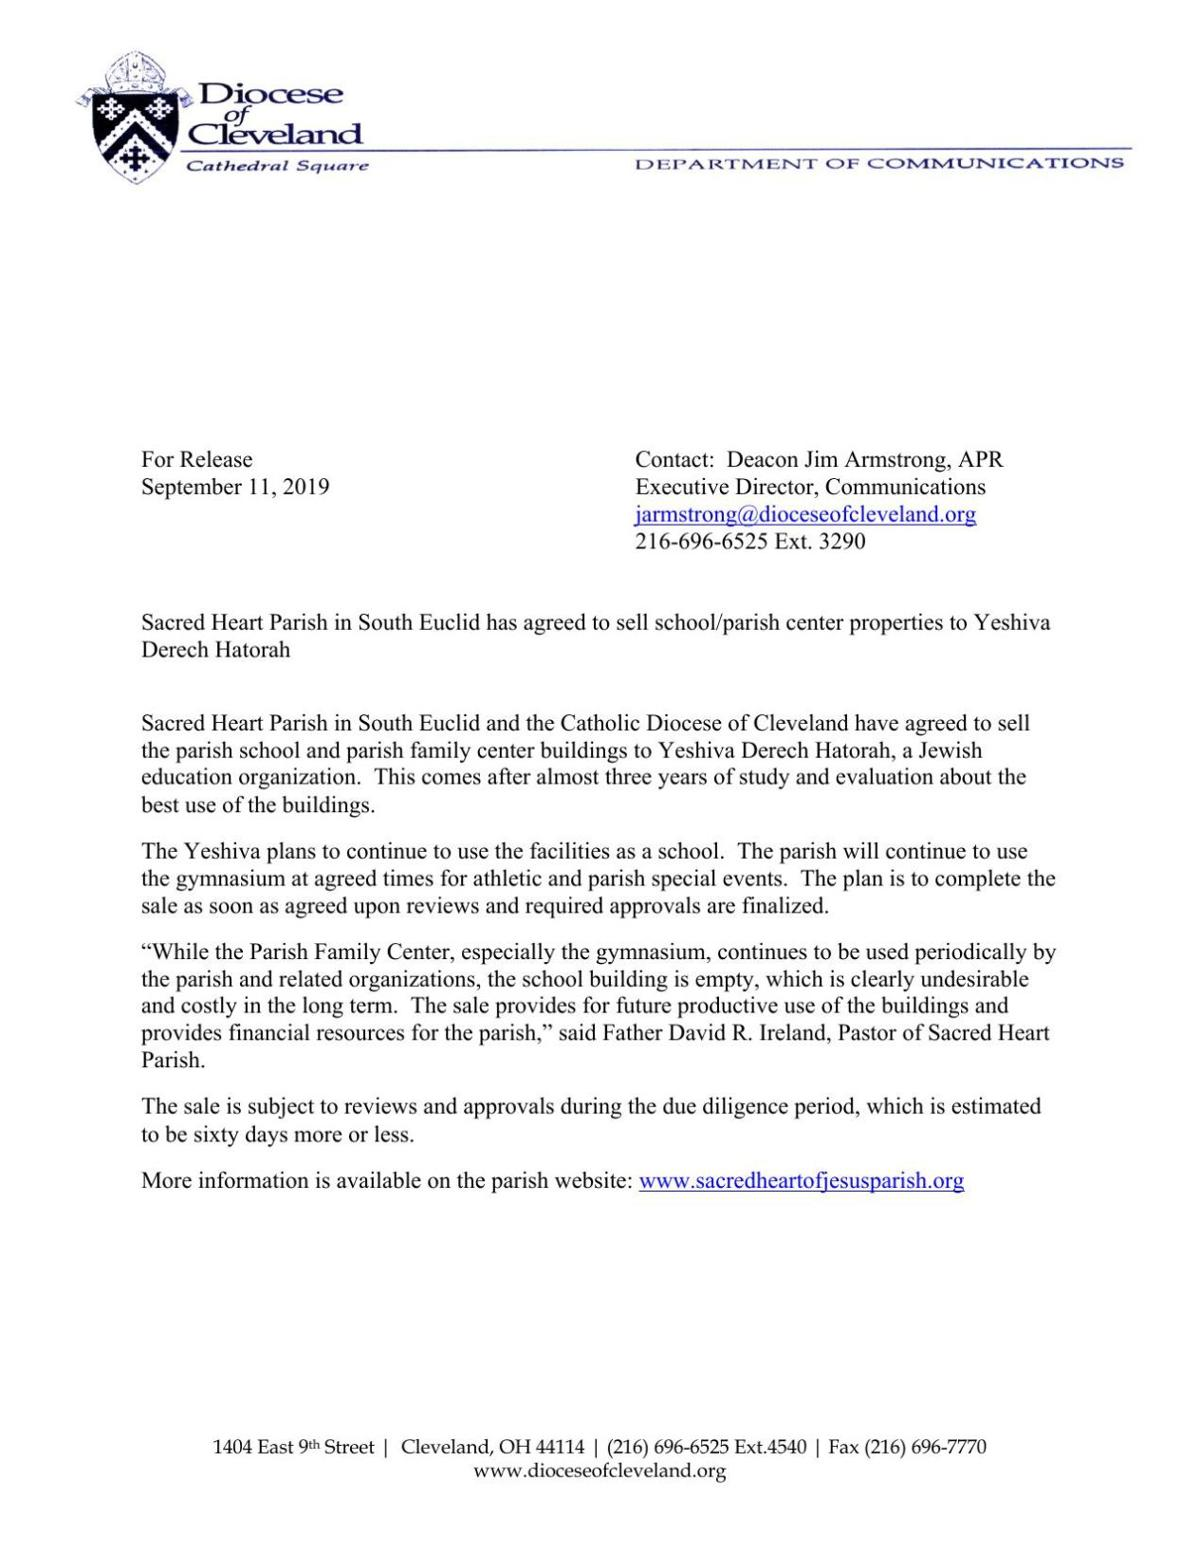 Press release from the Diocese of Cleveland regarding the sale